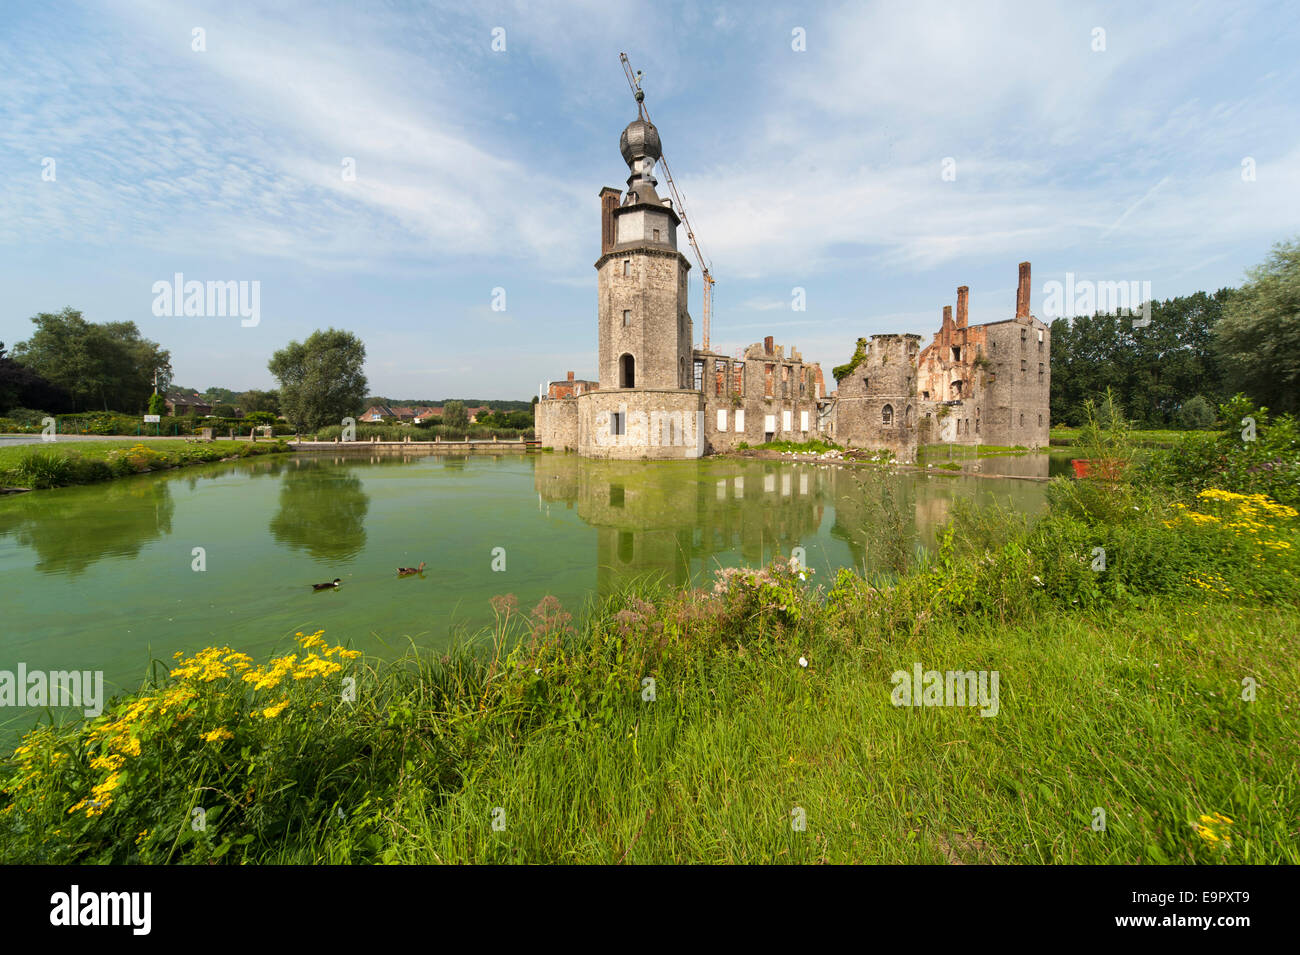 chateau d 39 havr wasserschloss mons wallonie belgien europa stock photo 74877385 alamy. Black Bedroom Furniture Sets. Home Design Ideas